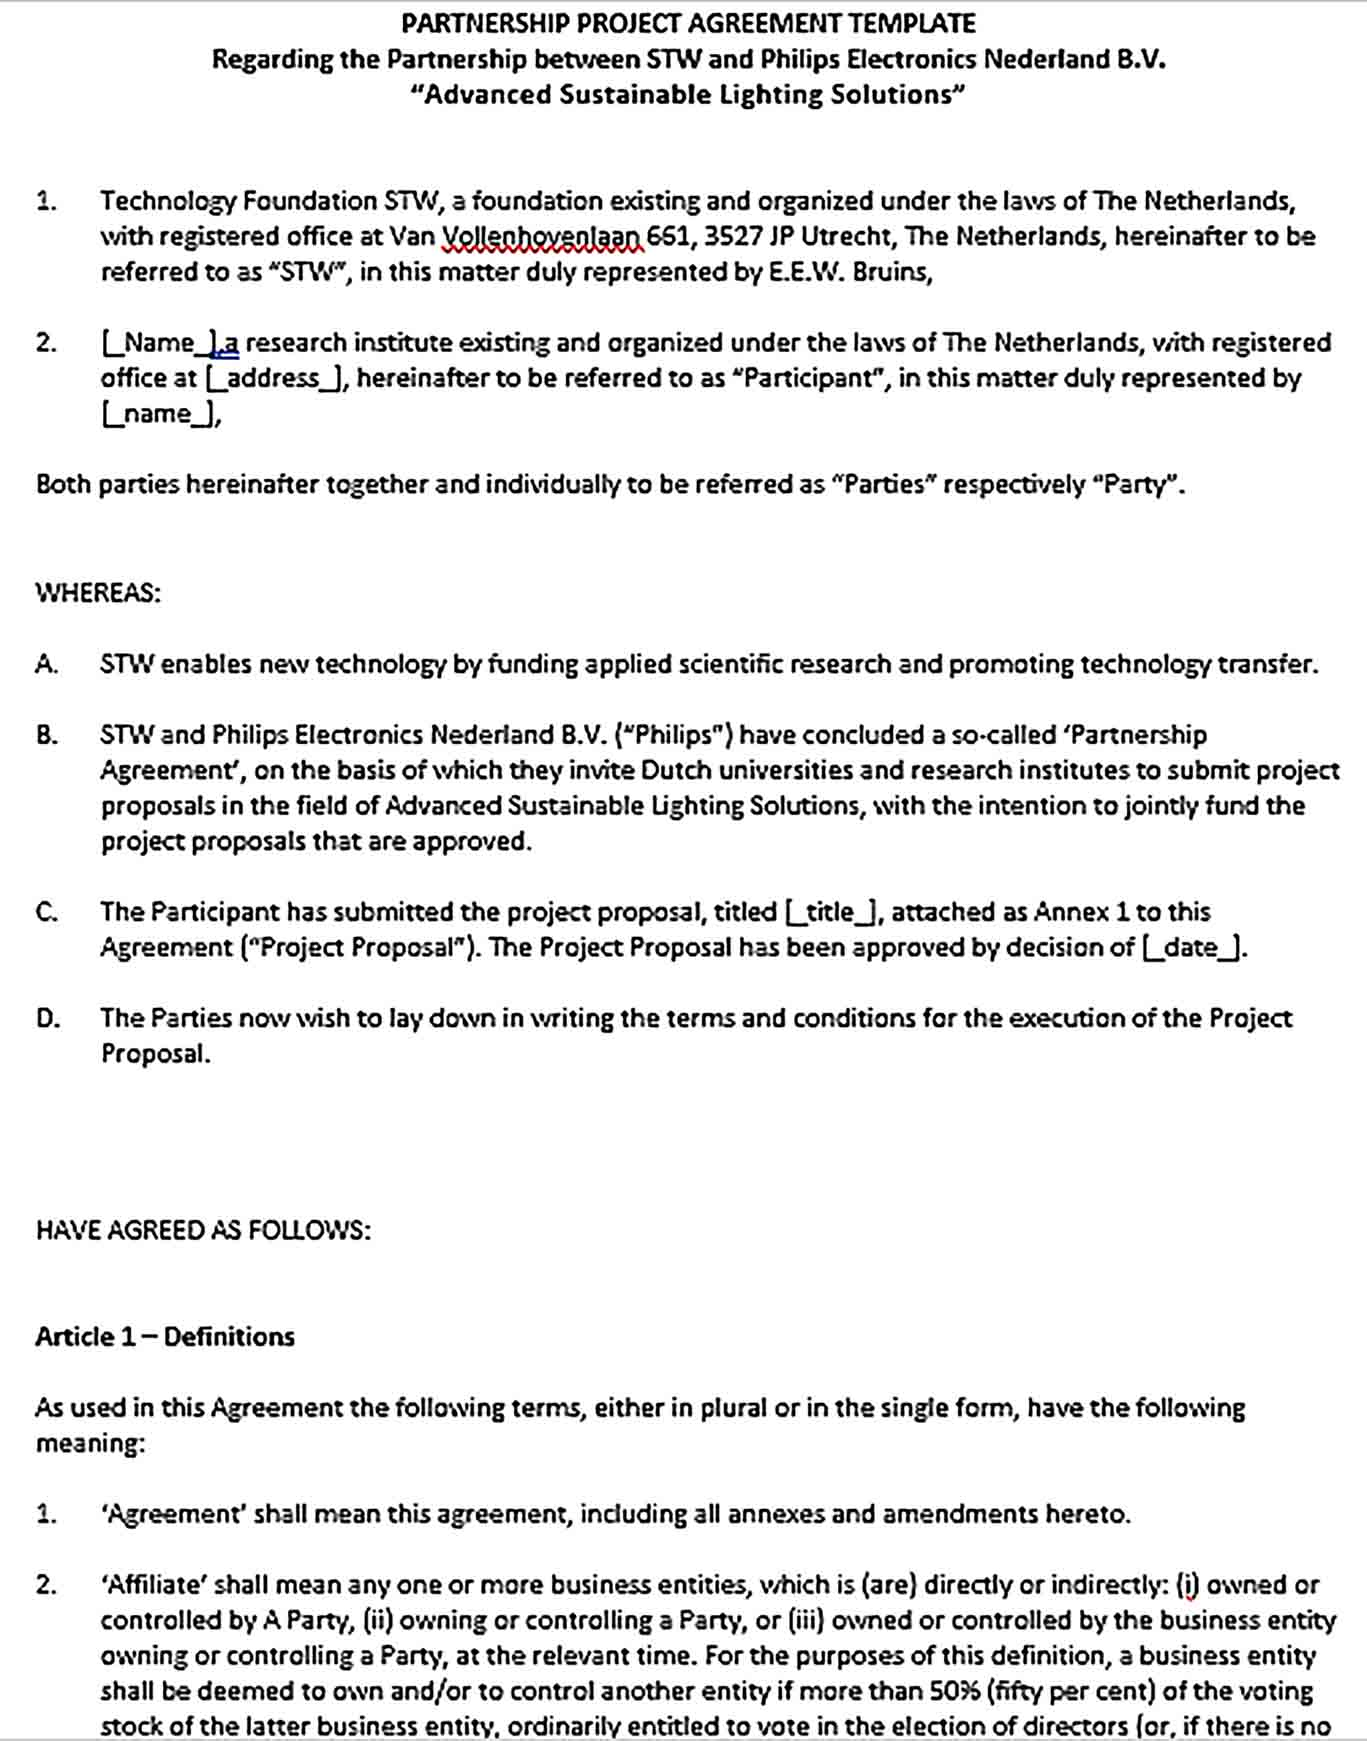 Sample Business Partnership Project Agreement in Word